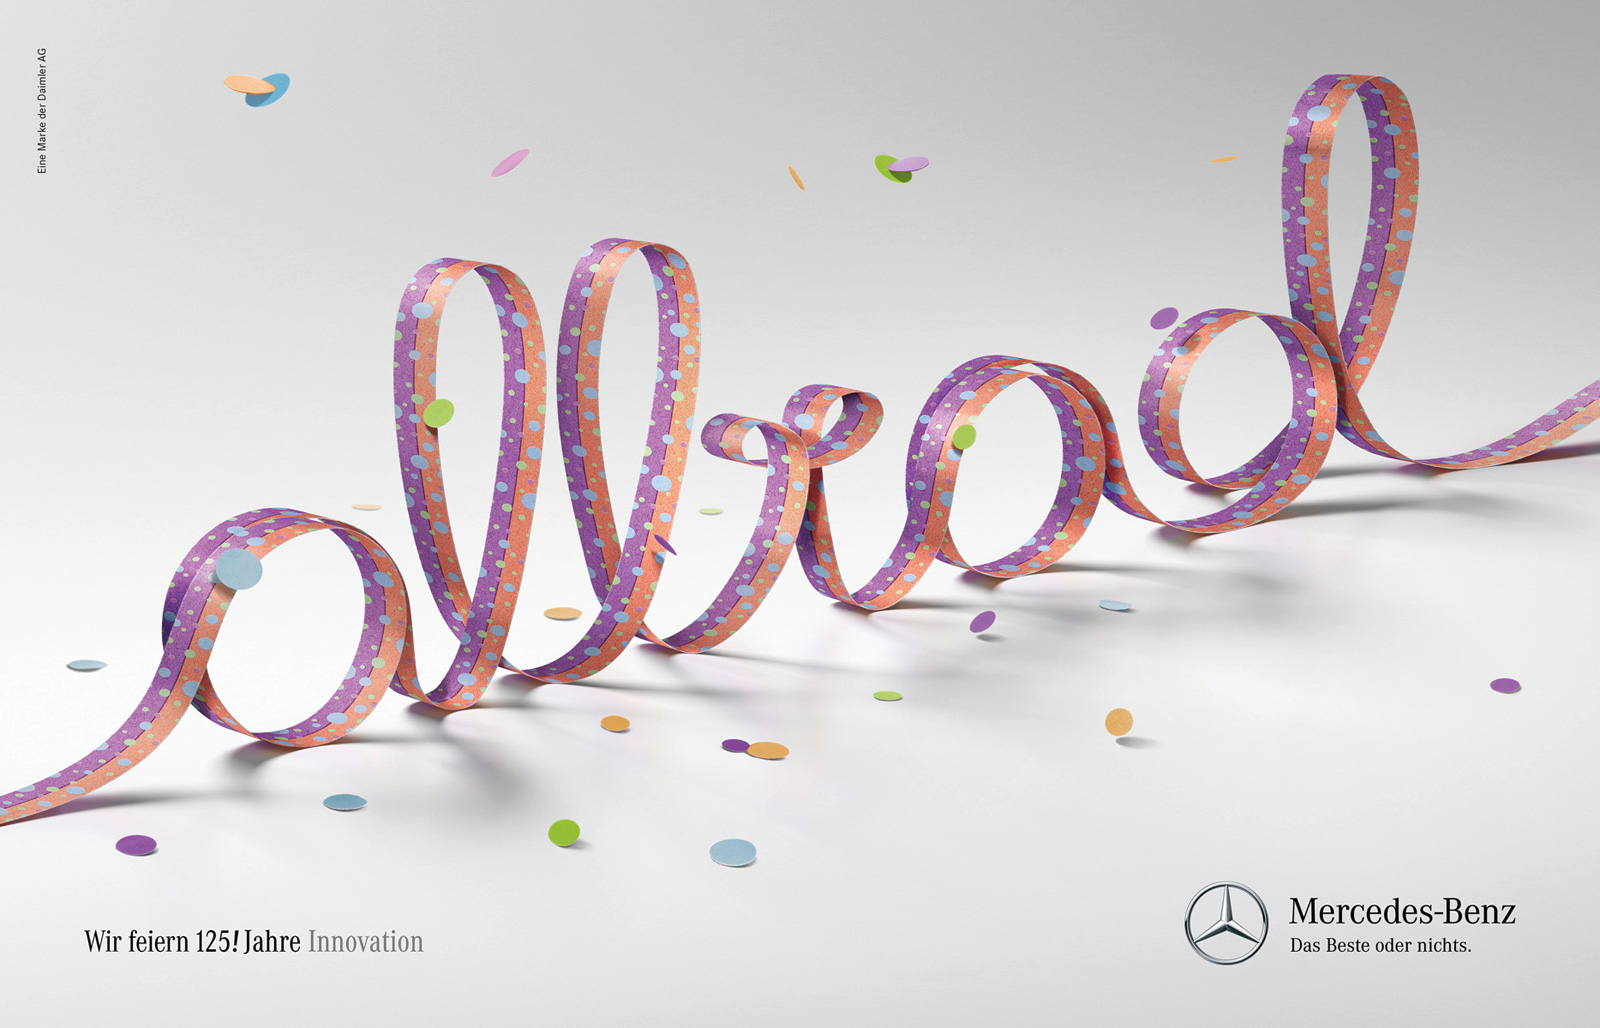 Mercedes-Benz: 125 years of